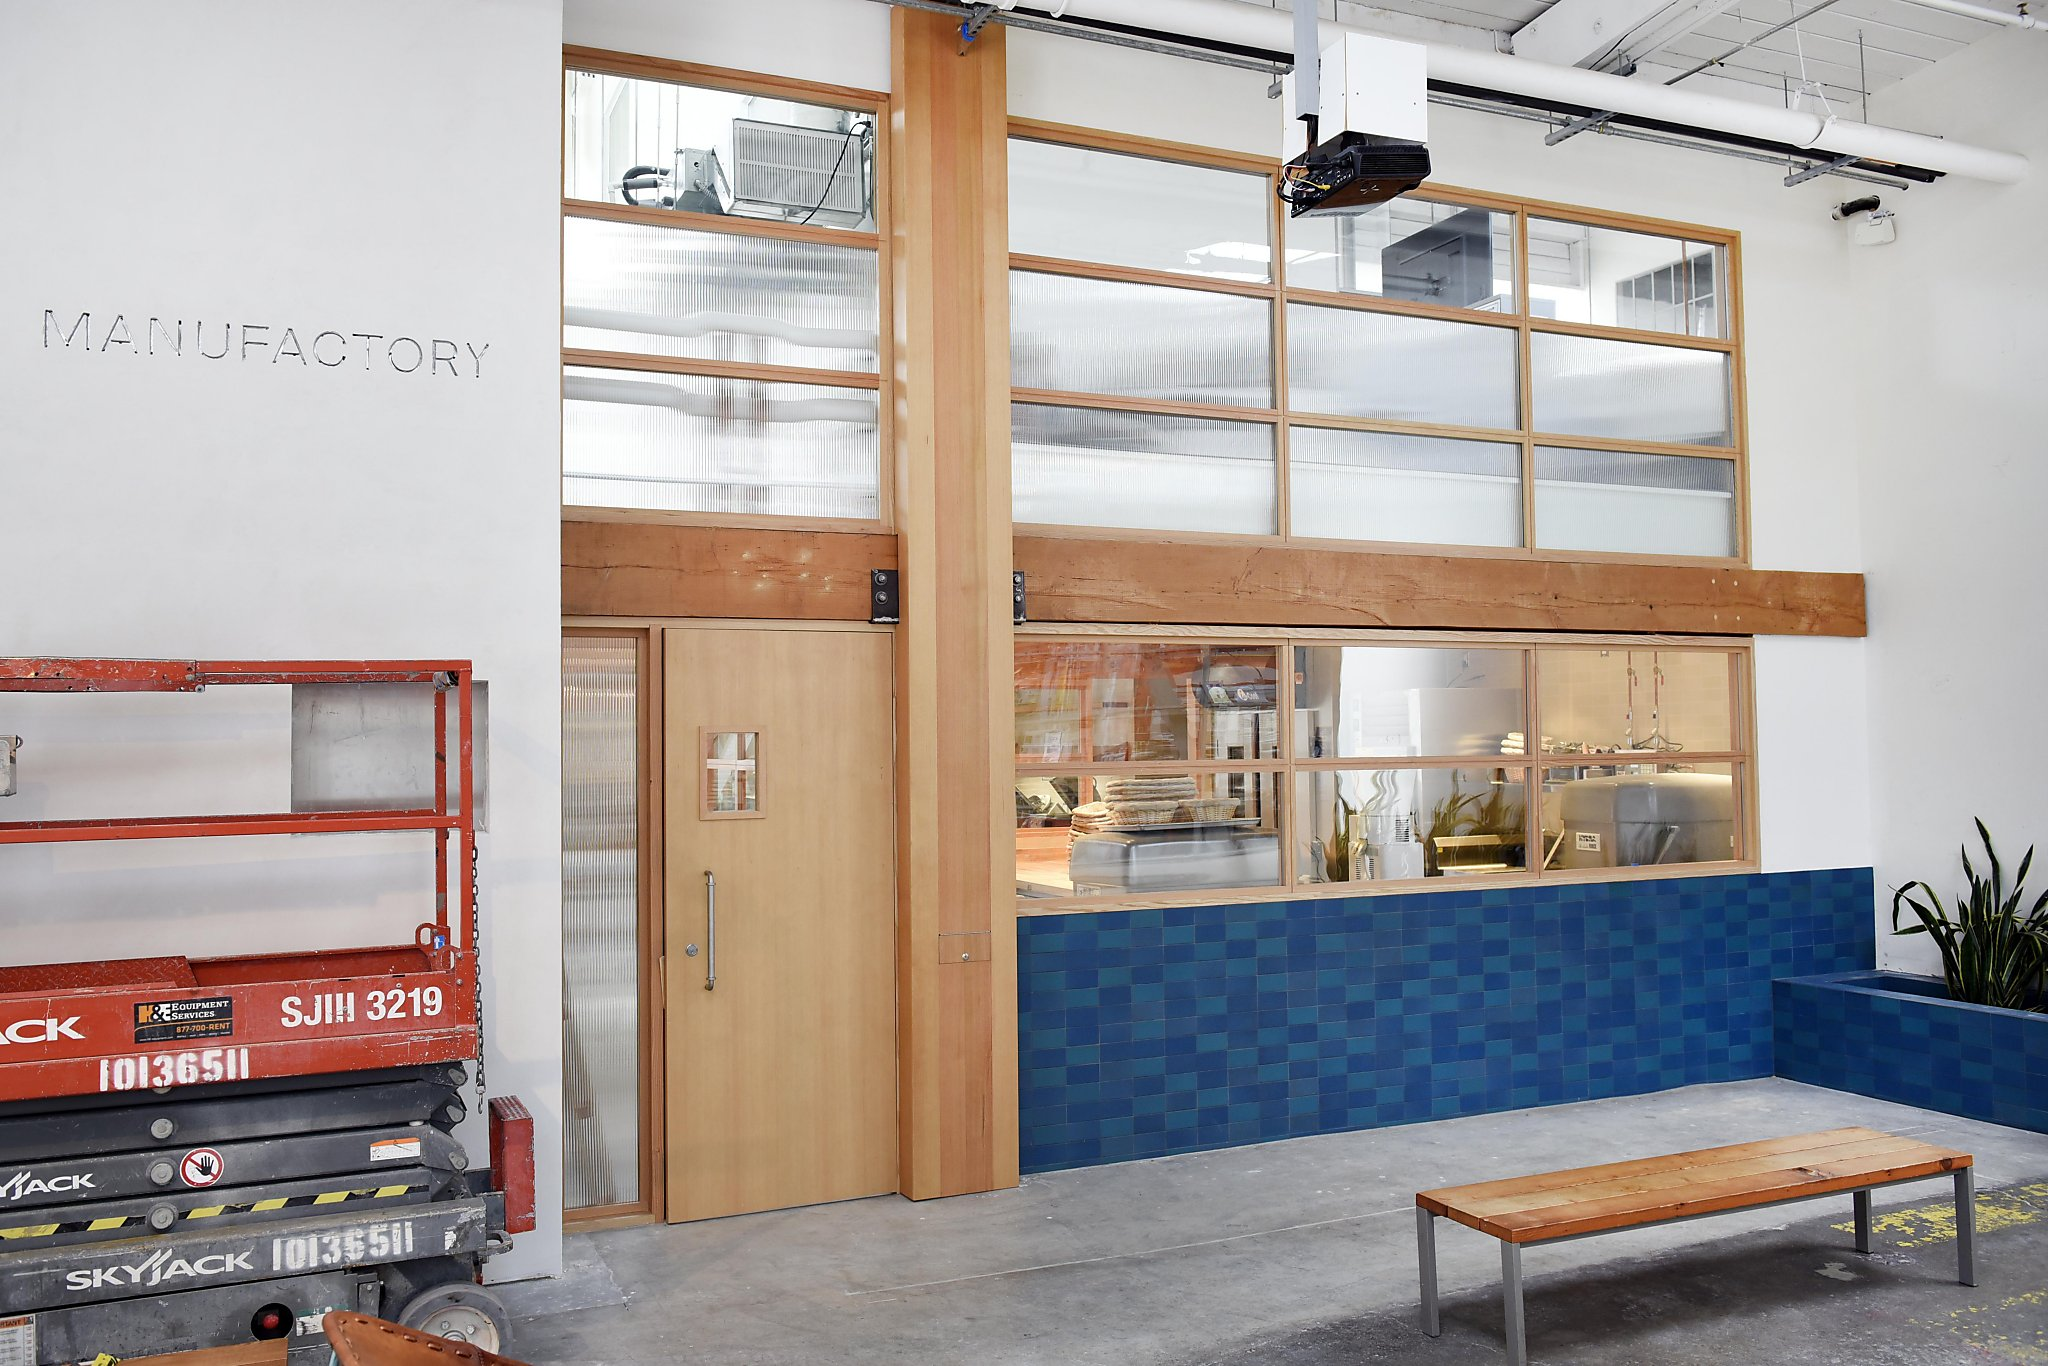 Tartine's Manufactory is the ultimate expression of Bay Area design